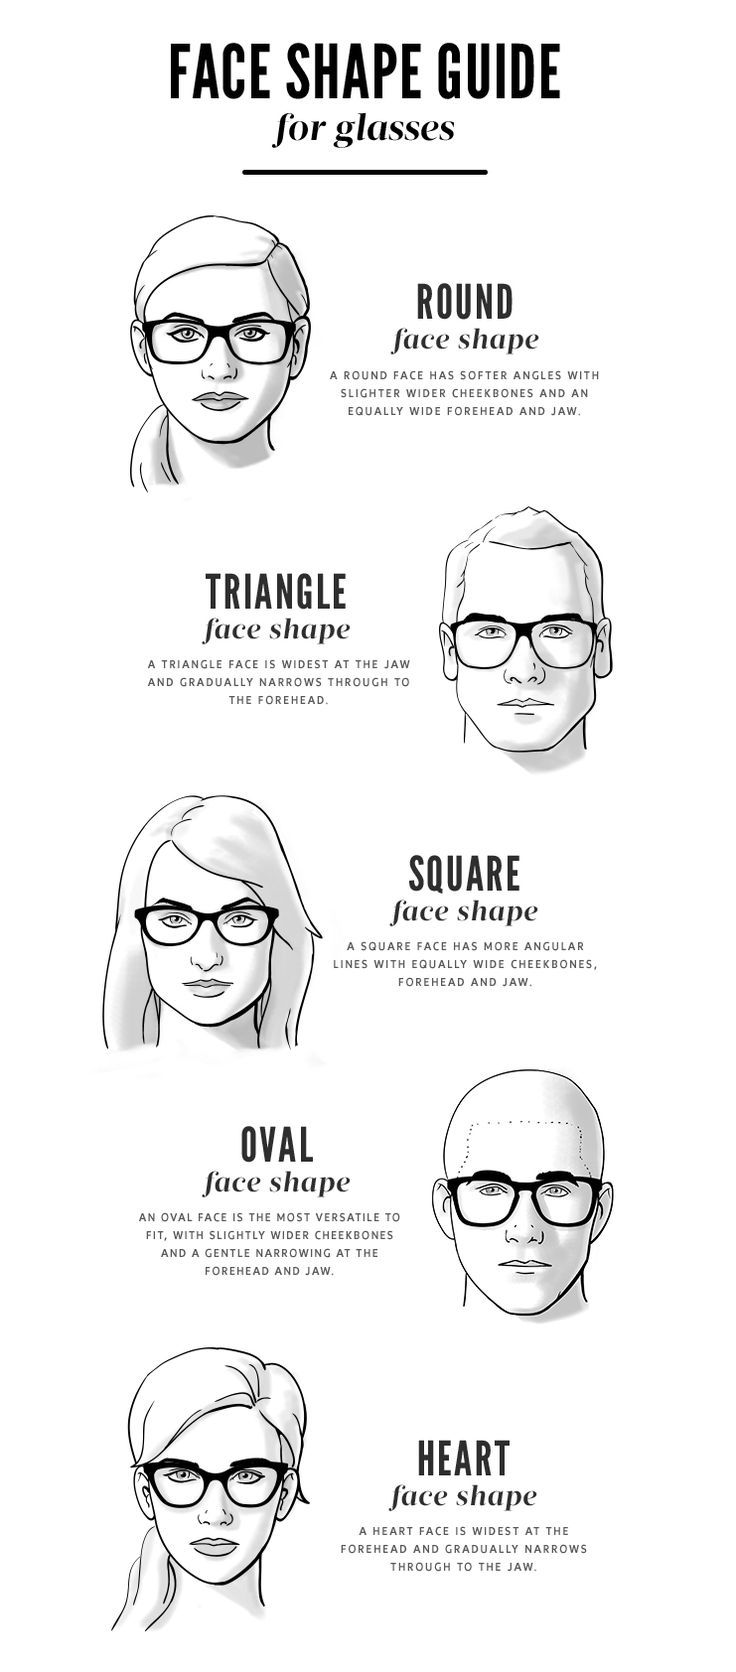 Glasses Frames Per Face Shape : Face Shape Guide for Glasses Oakley sunglasses, For ...